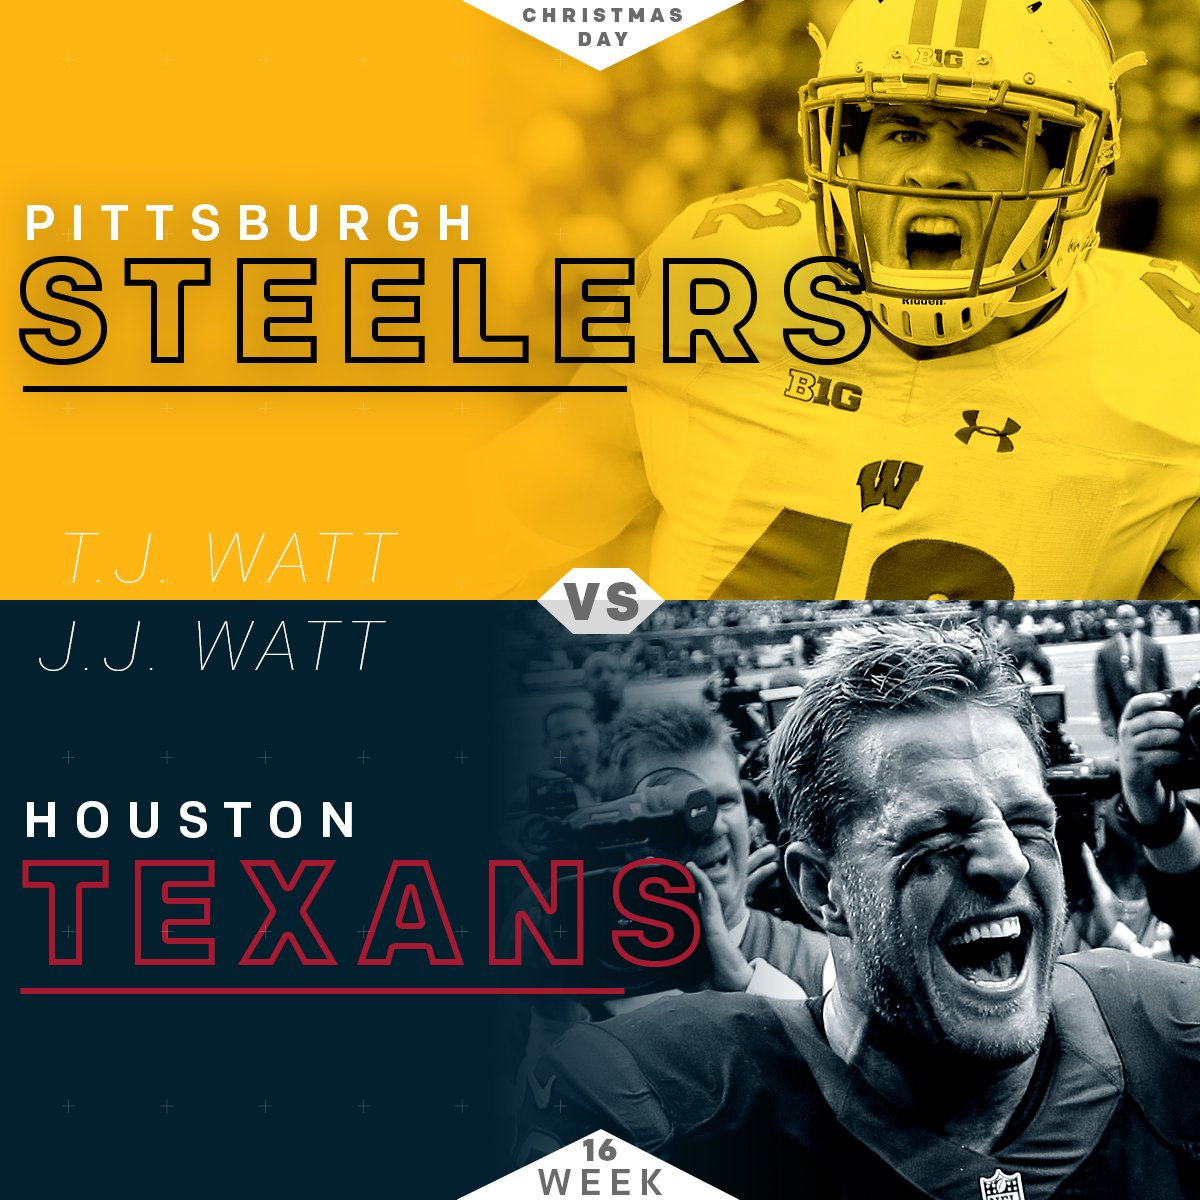 nfl on twitter a watt brother showdown coming christmas day pitvshou - Nfl Schedule Christmas Day